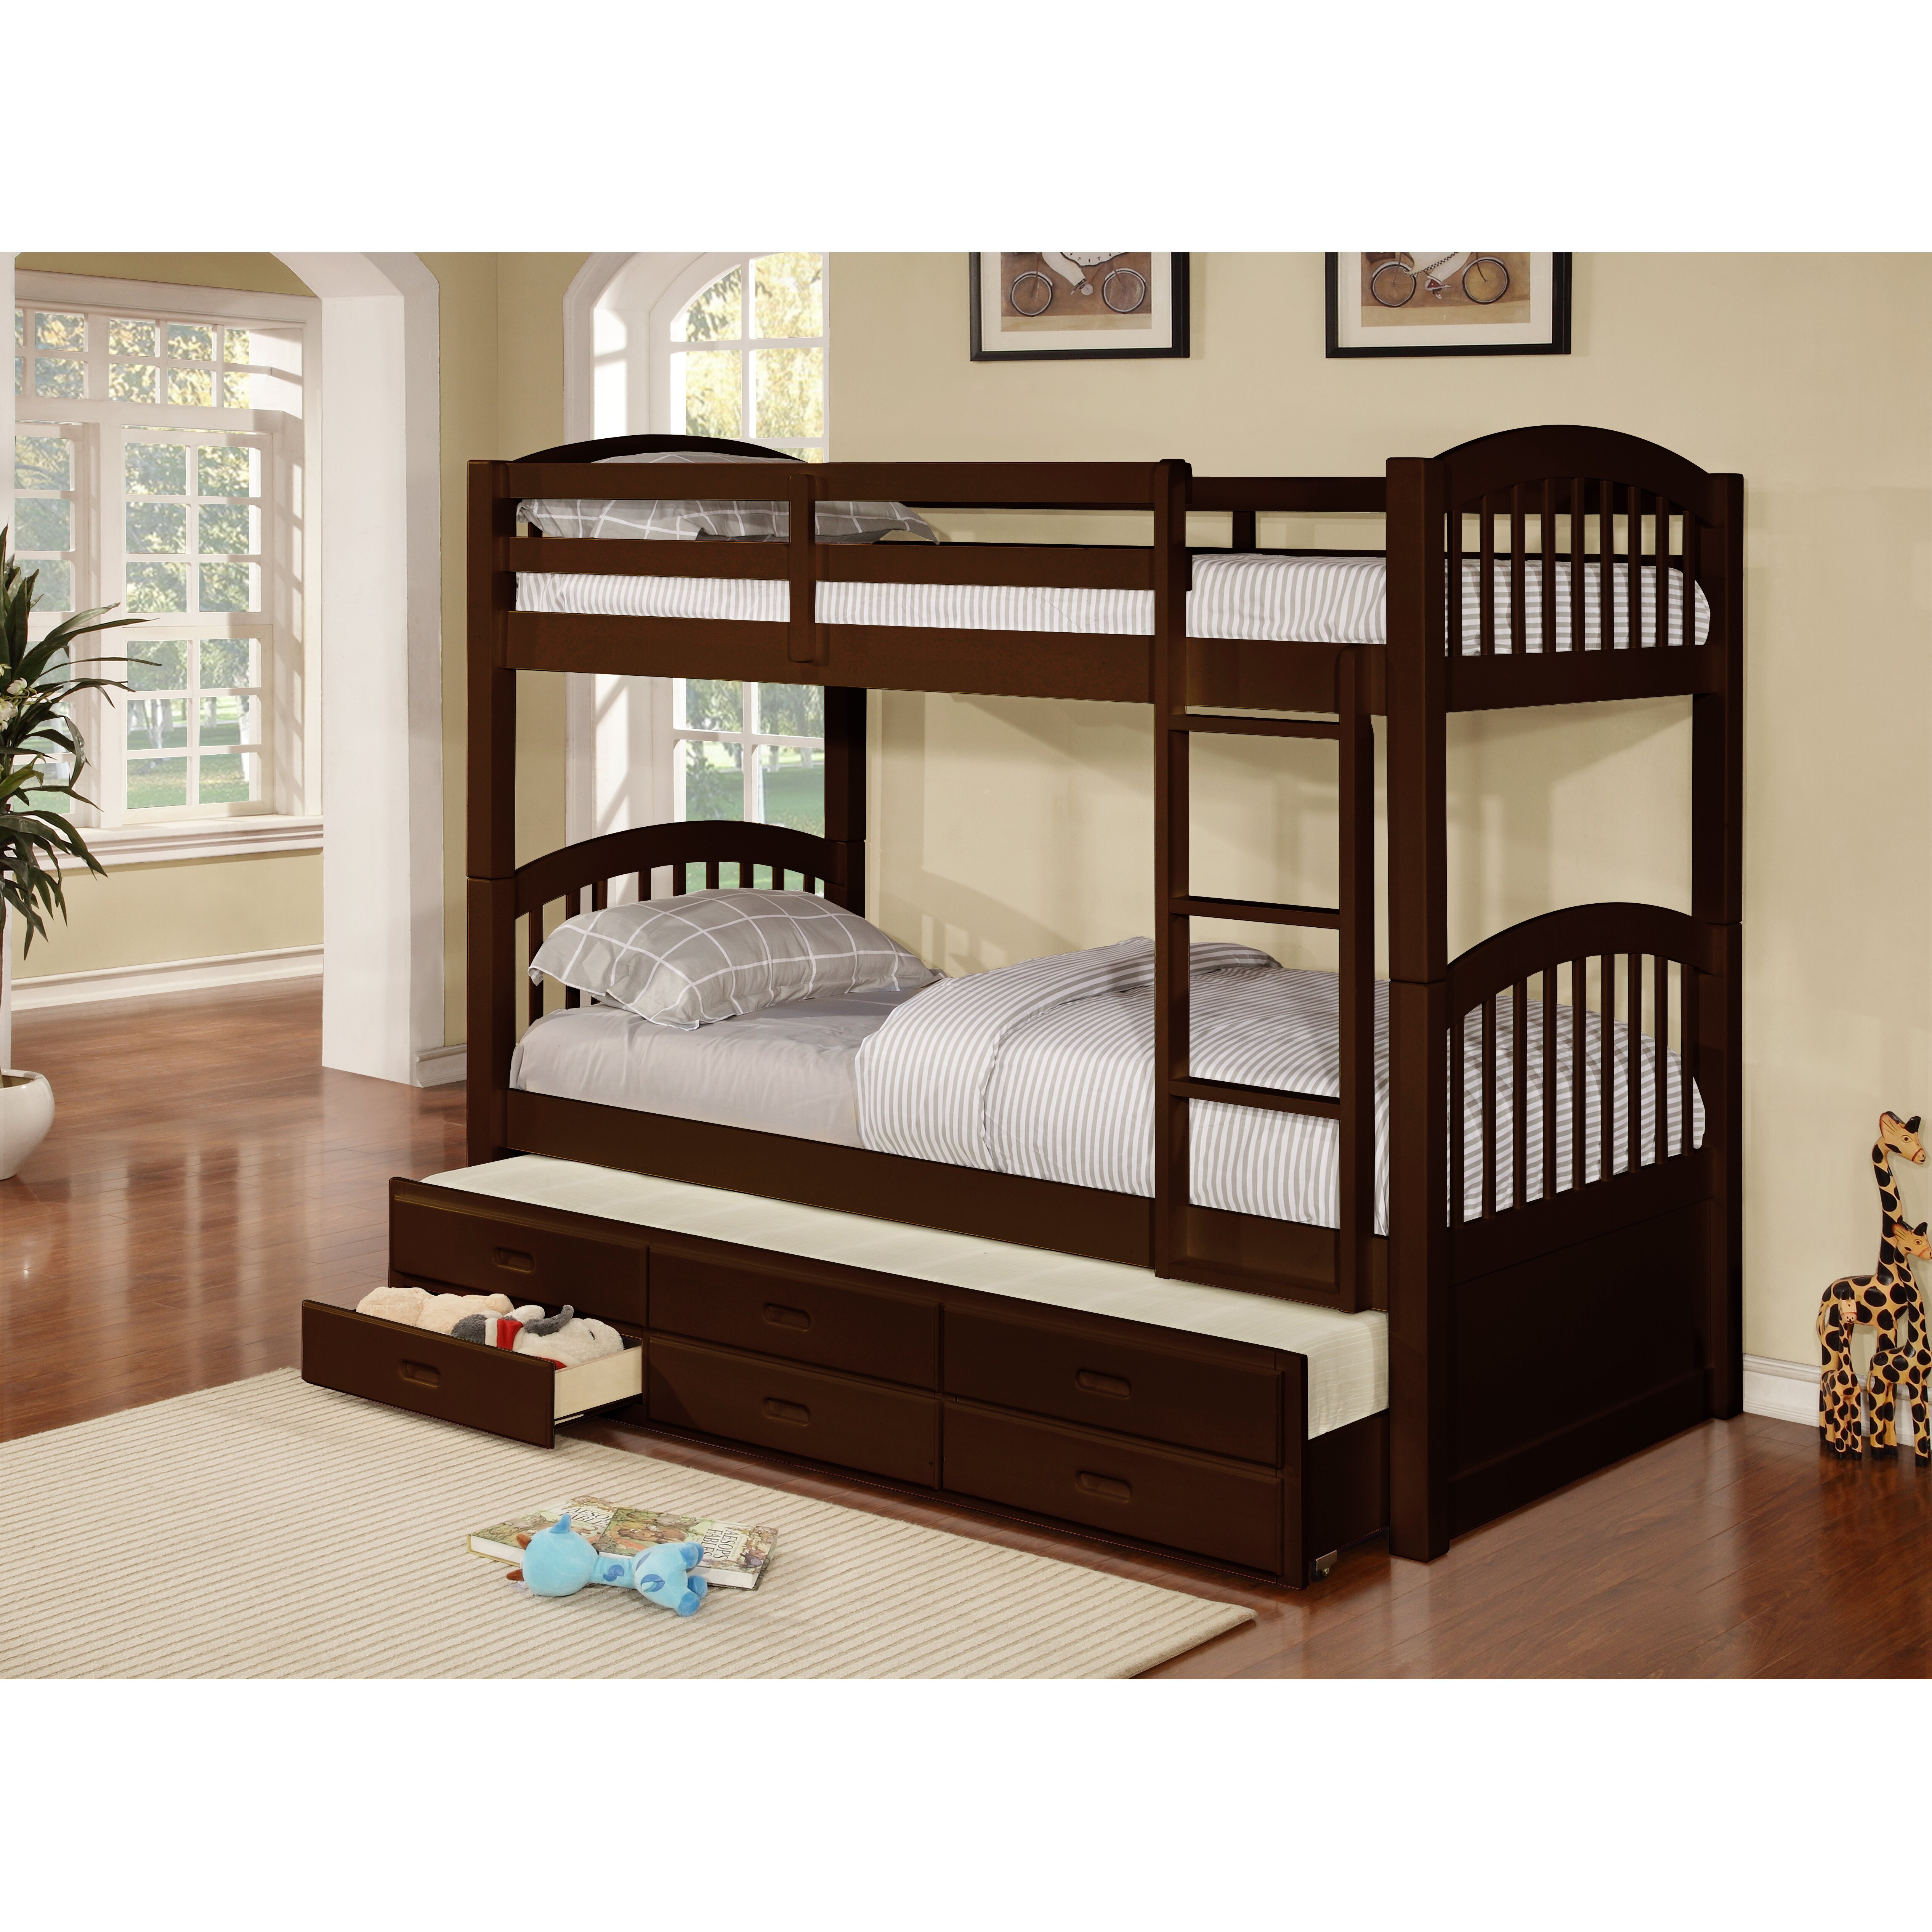 Inroom designs twin bunk bed reviews wayfair In room designs